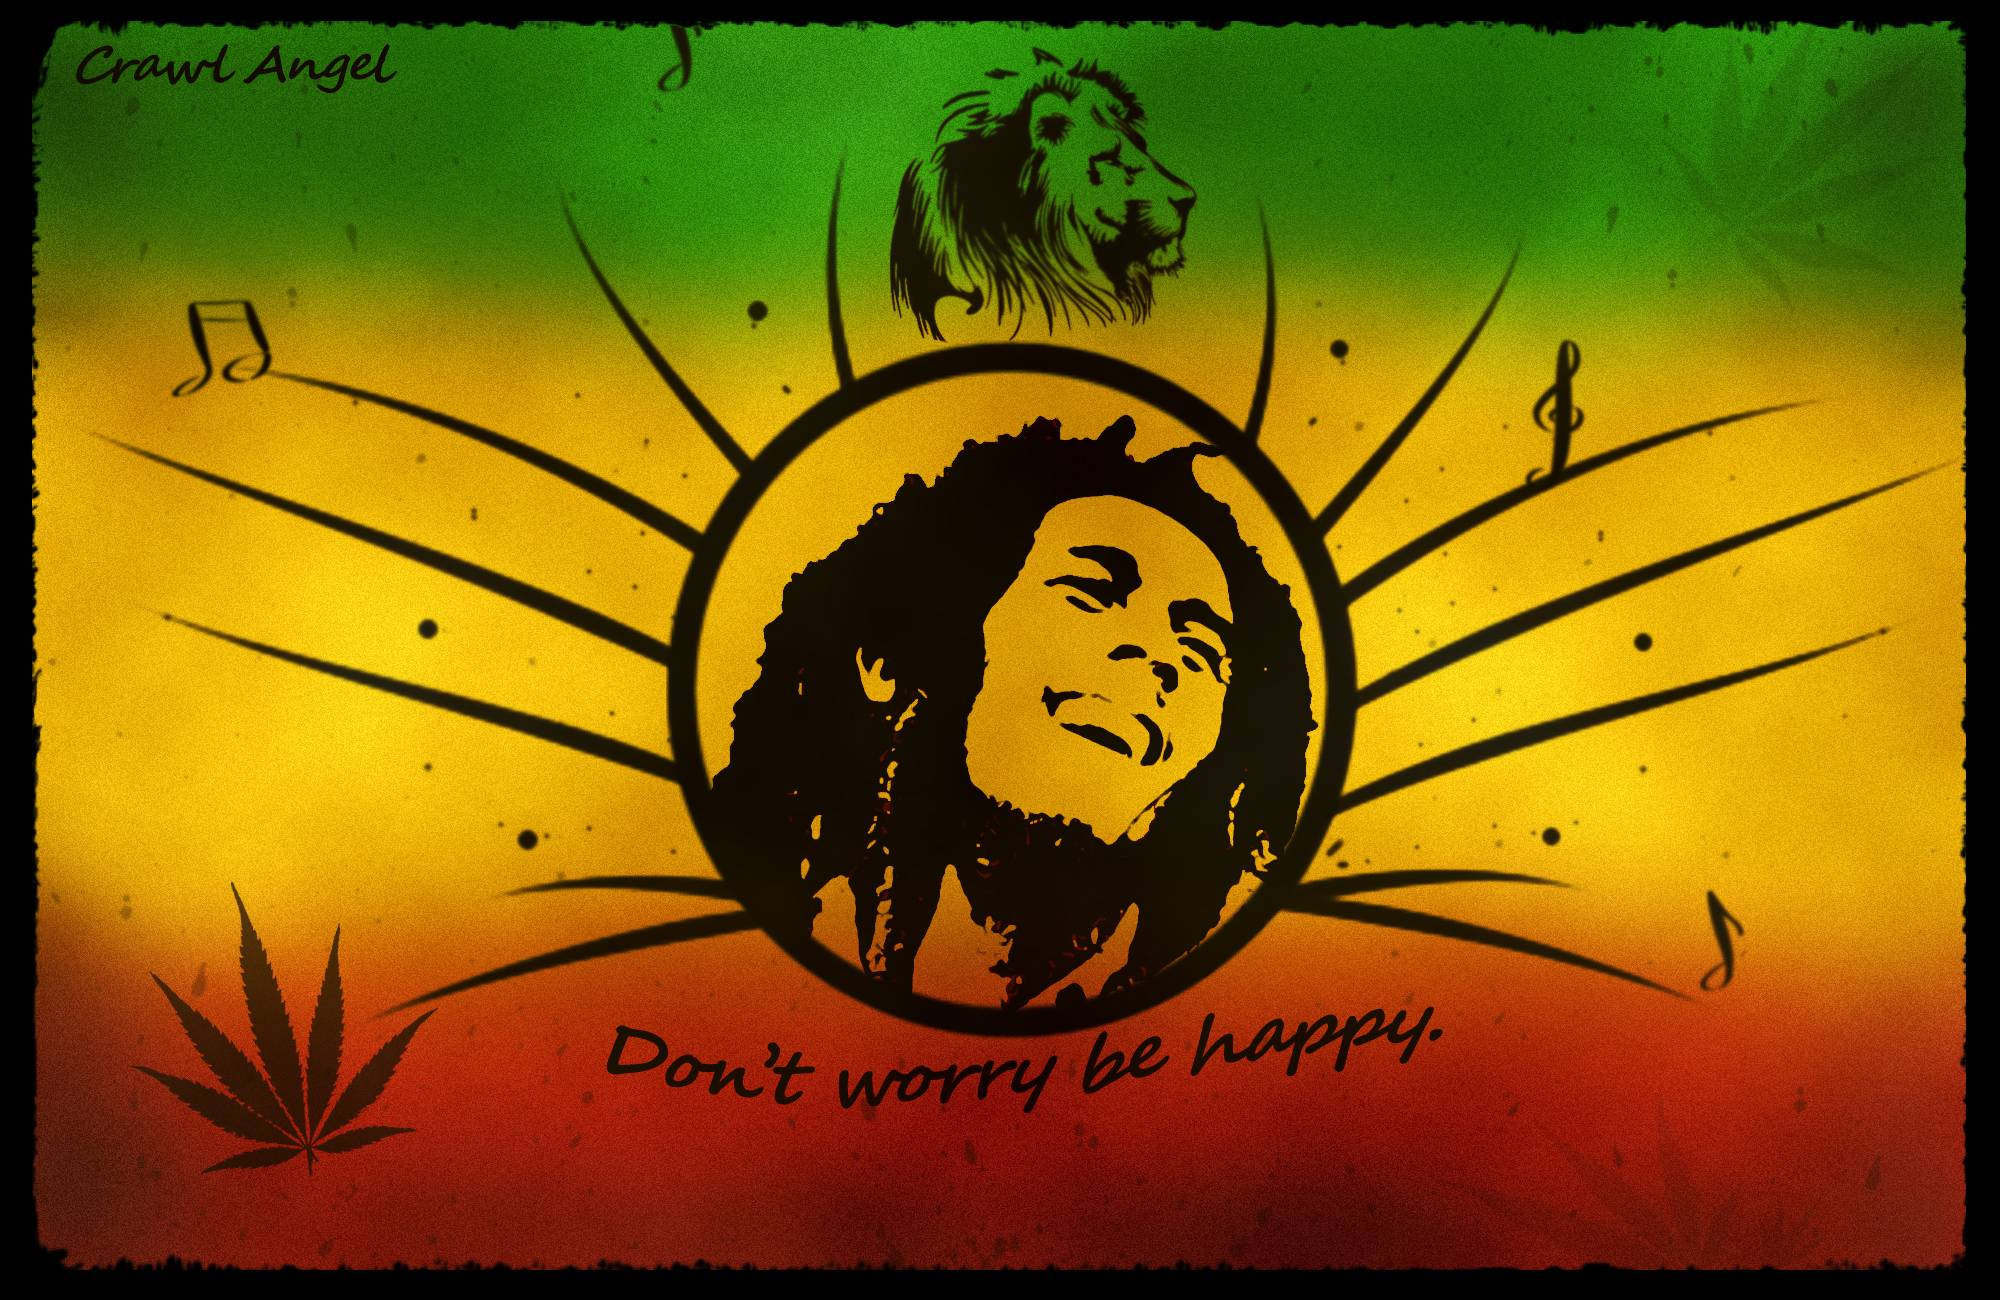 Bob Marley Quotes Wallpapers - Wallpaper cave